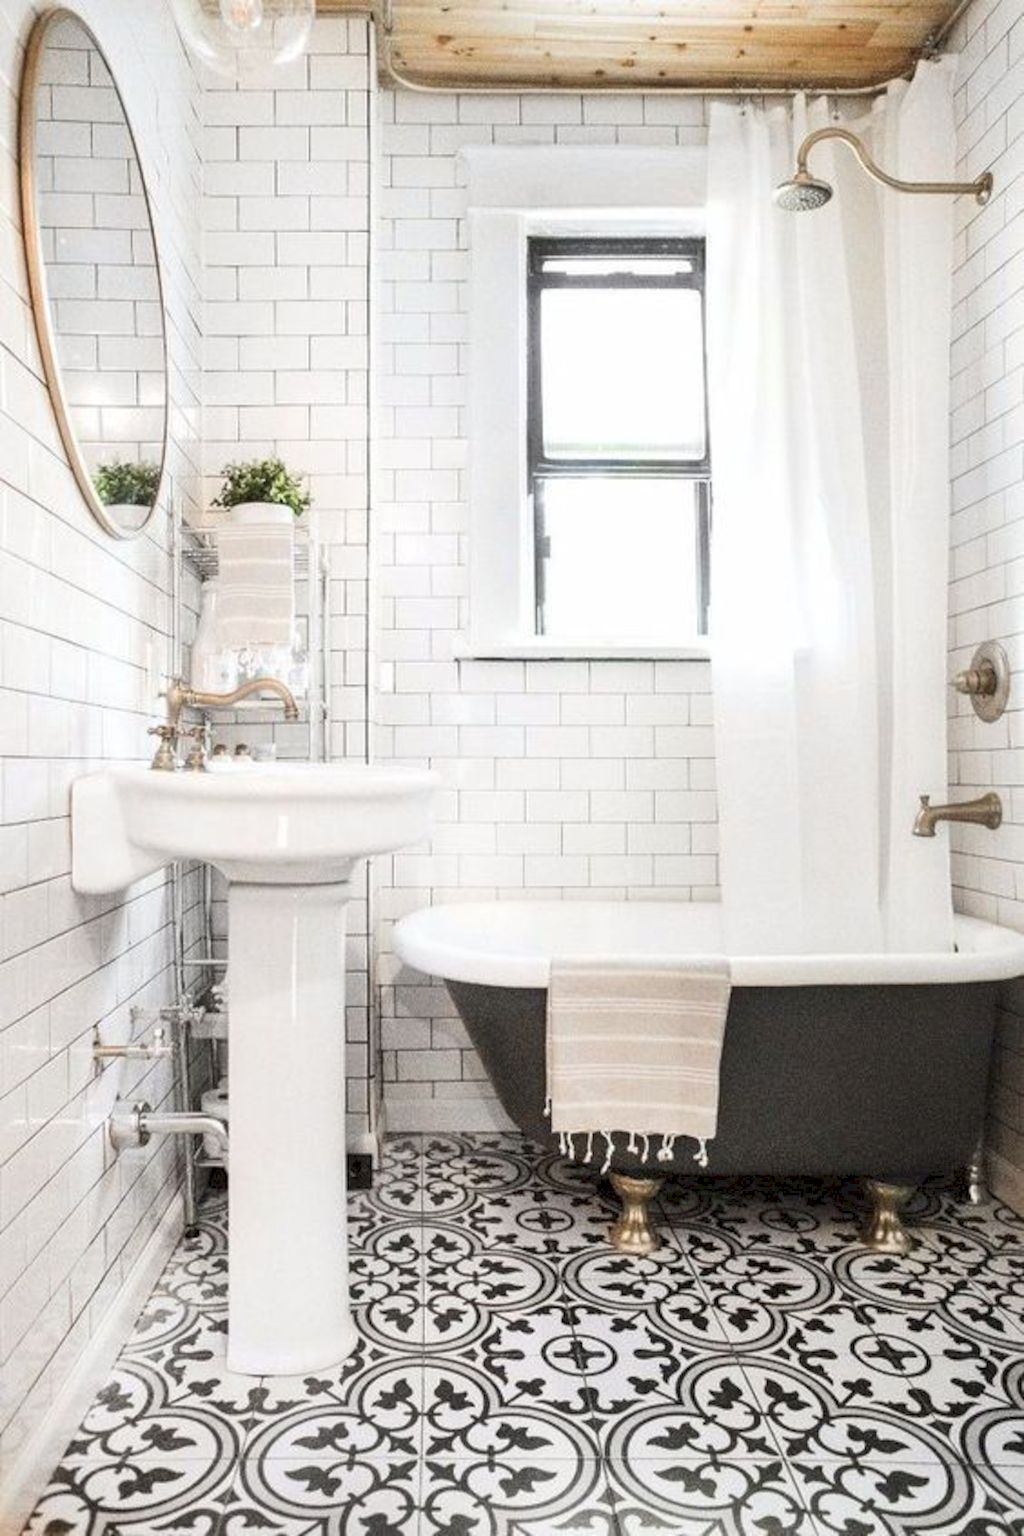 Beautiful bathroom update with eclectic patterned tiles and ethnic rugs very efficient to improve bathroom floor design Image 17